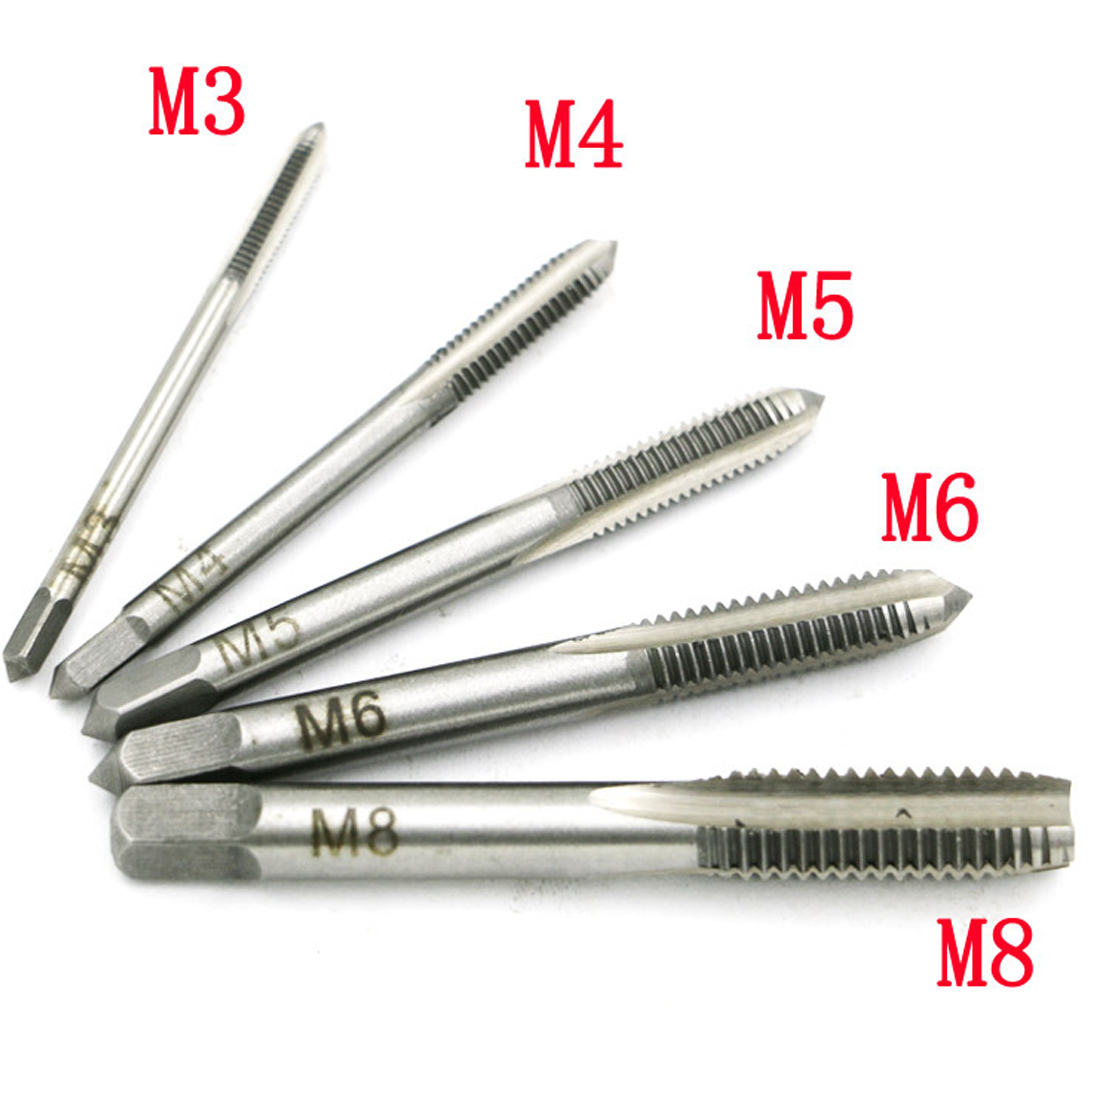 Screw Thread Hand Tap Drill 5PCS/Set M3 M4 M5 M6 M8 Ball bearing steel Tool Screw Thread Hand Tap Drill screw moving quality assurance panasonic air plasma cutting accessories reasonable price tips plasma electrodes